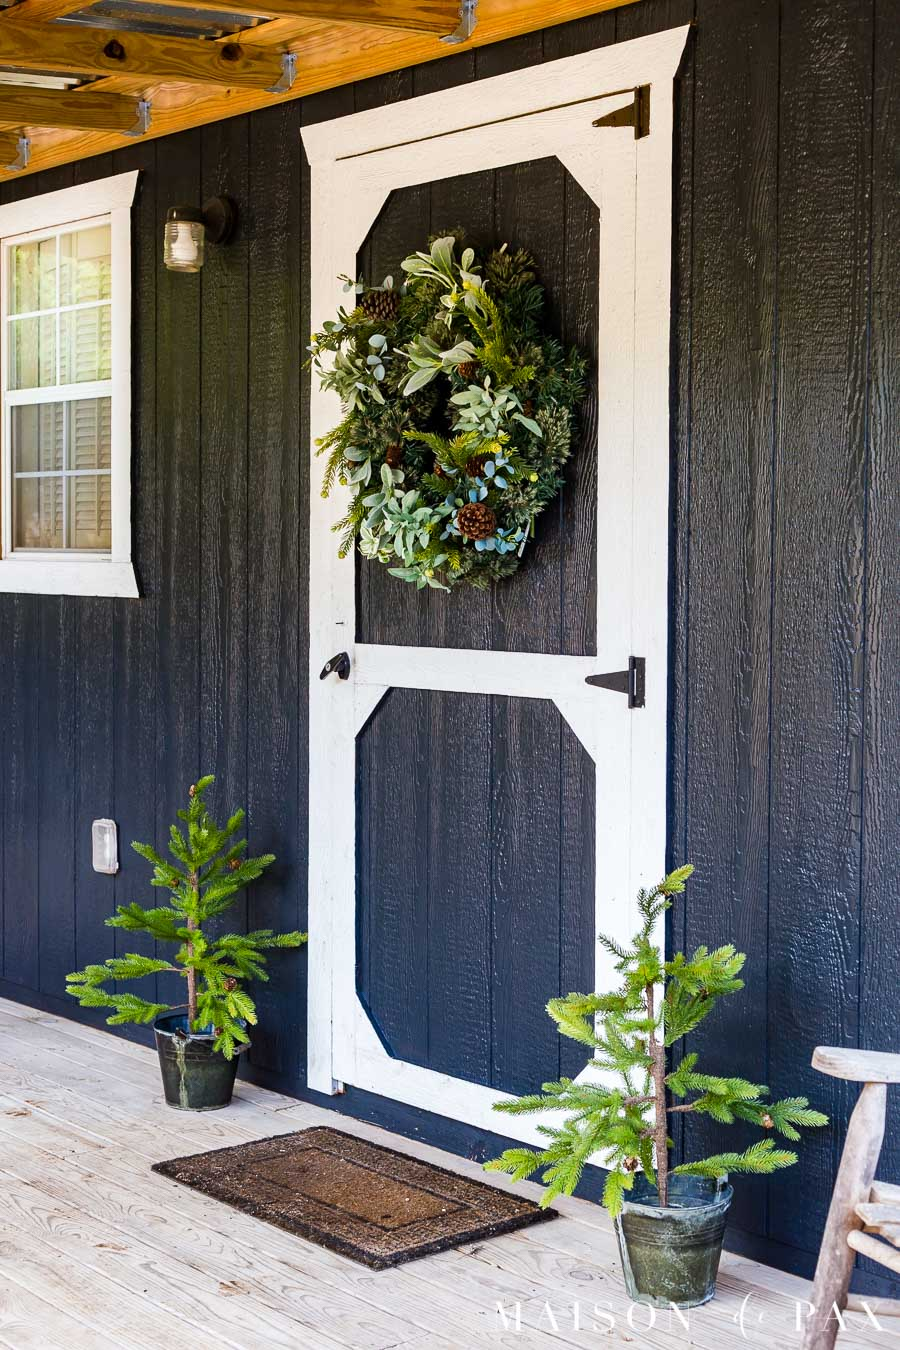 two tiny Christmas trees in rustic buckets on either side of the front door